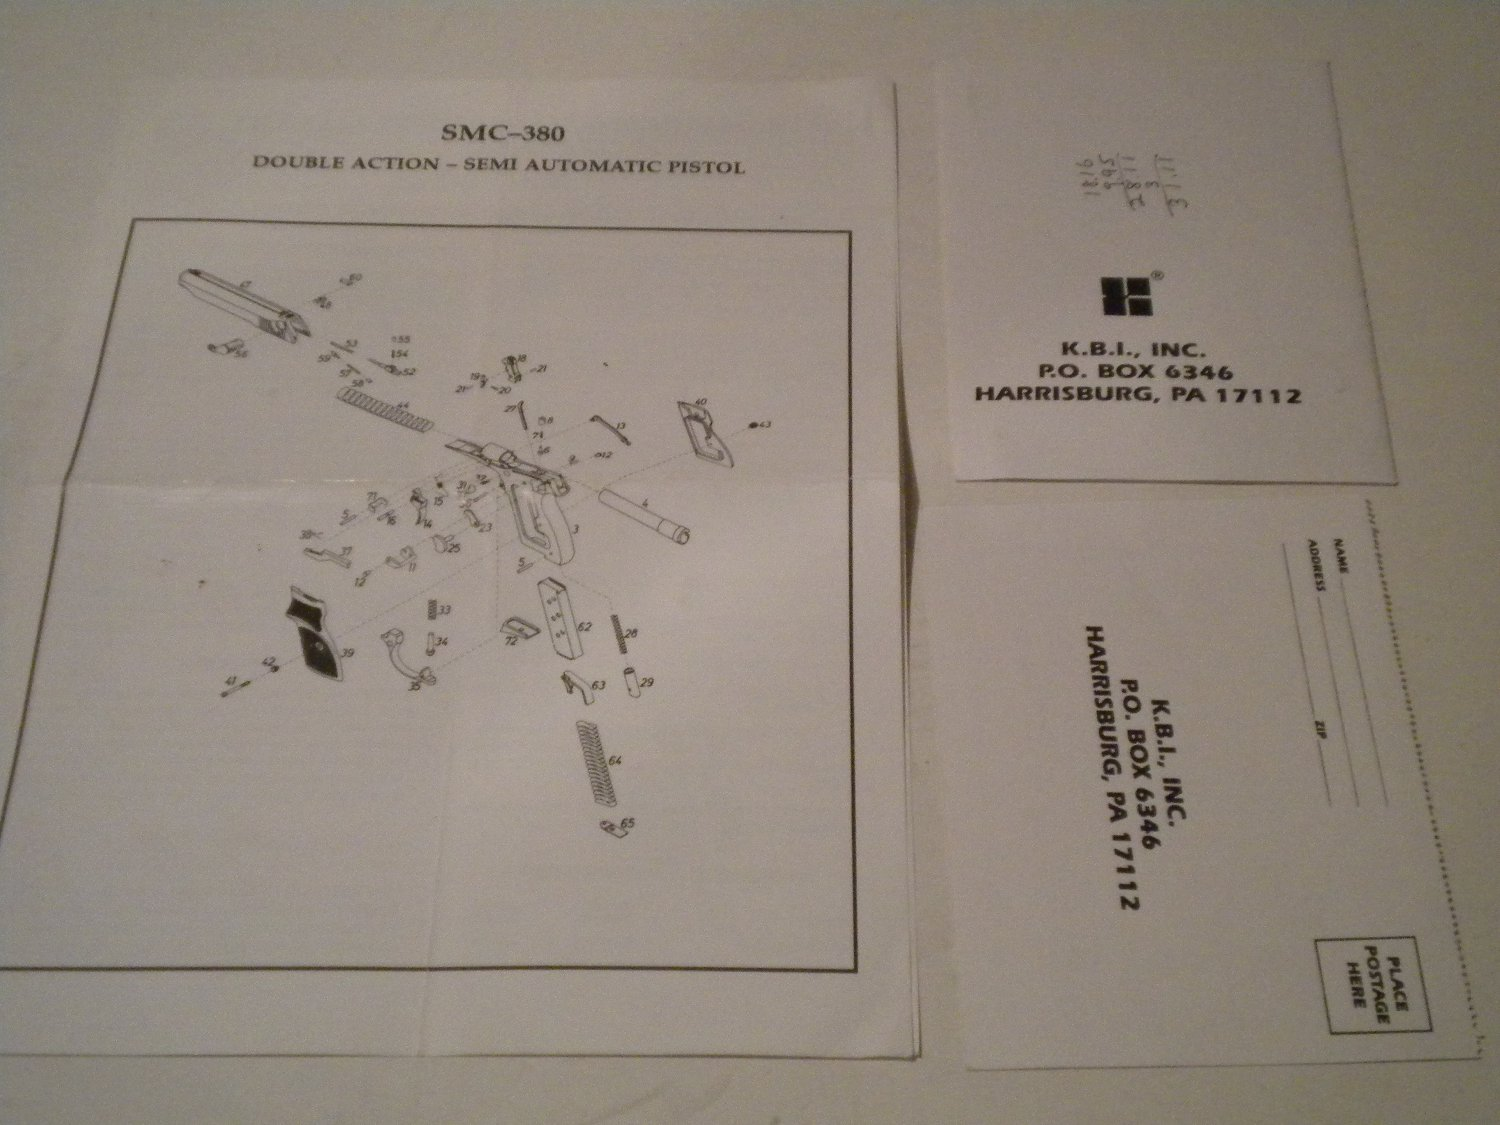 KBI INSTRUCTION AND SAFETY MANUAL for the SMC-380 Semi Auto Pistol, Original